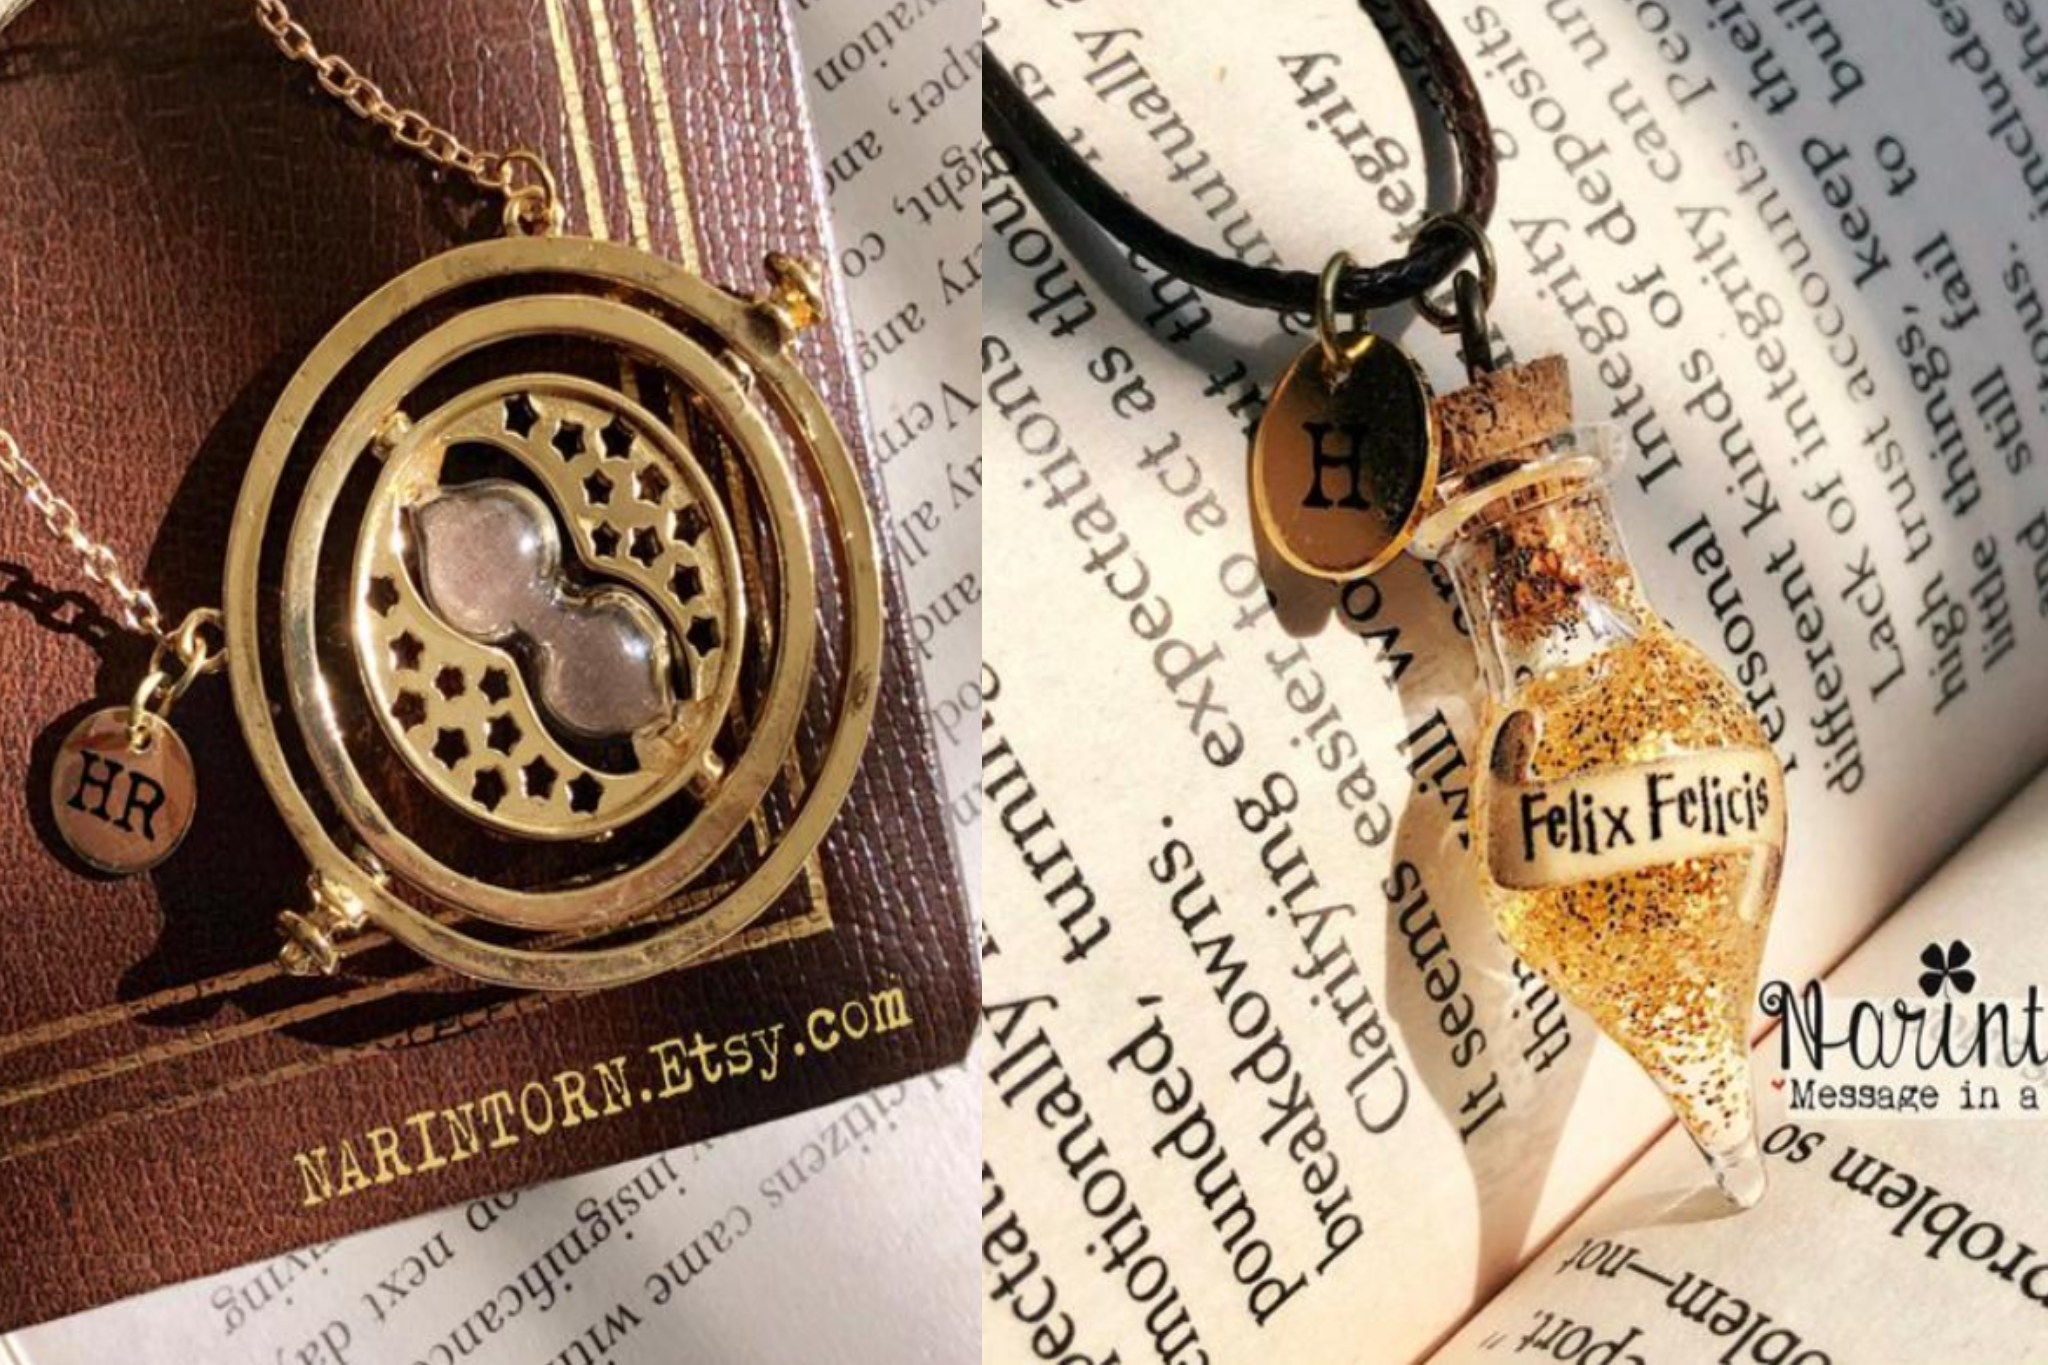 Image of Time Turner necklace and Felix Felicis Necklace